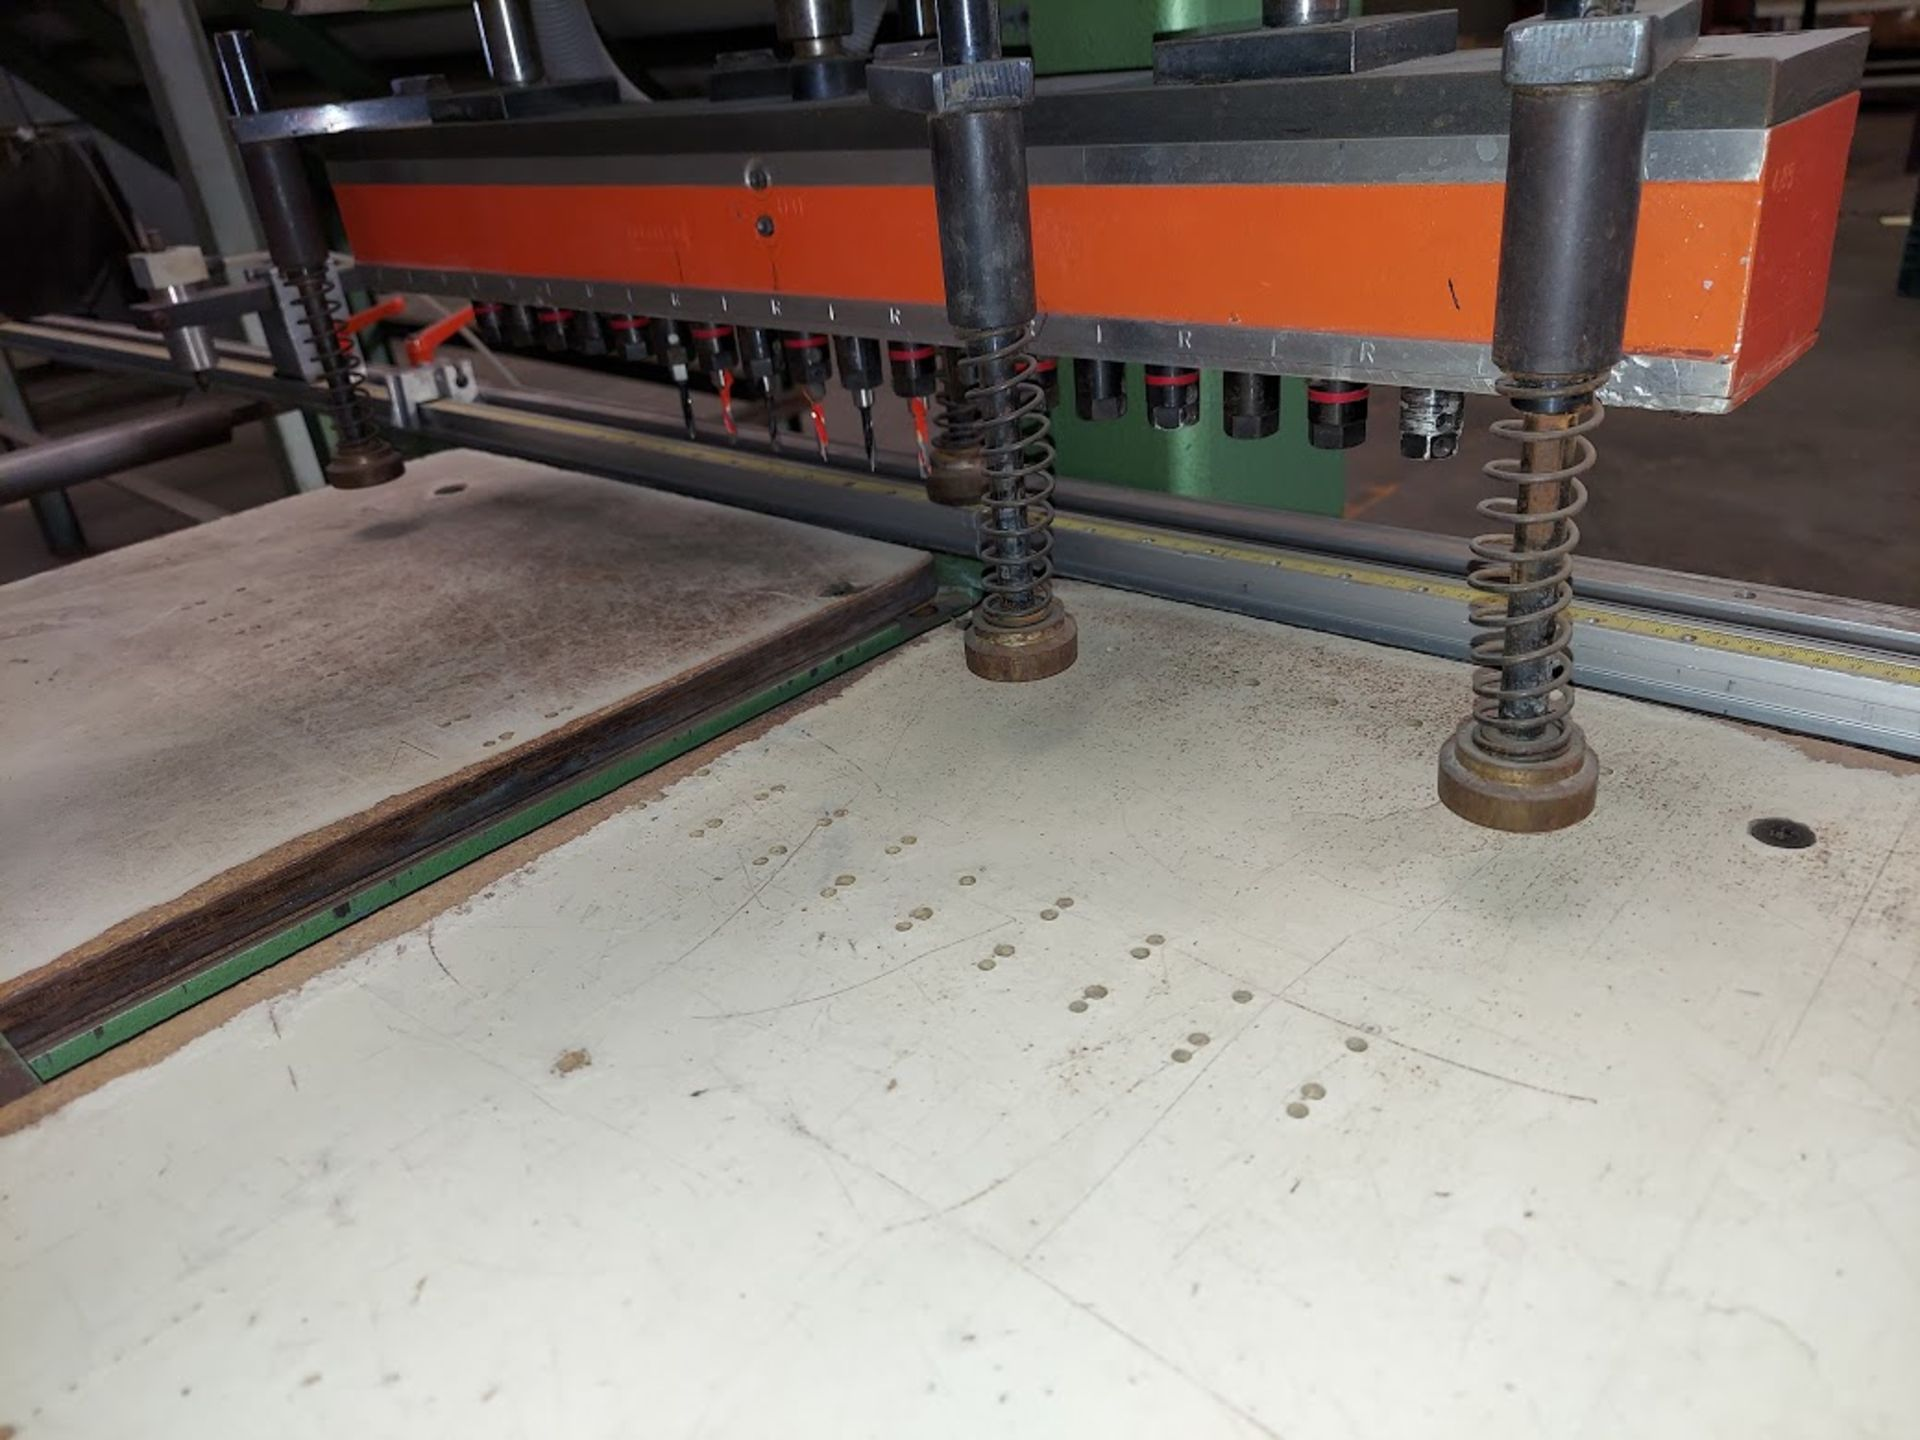 Ayen 21 Spindle Line Boaring Machine, Model #LRB 32-21, 230 Volts 3 Phase, Pneumatic foot peddle, - Image 3 of 5